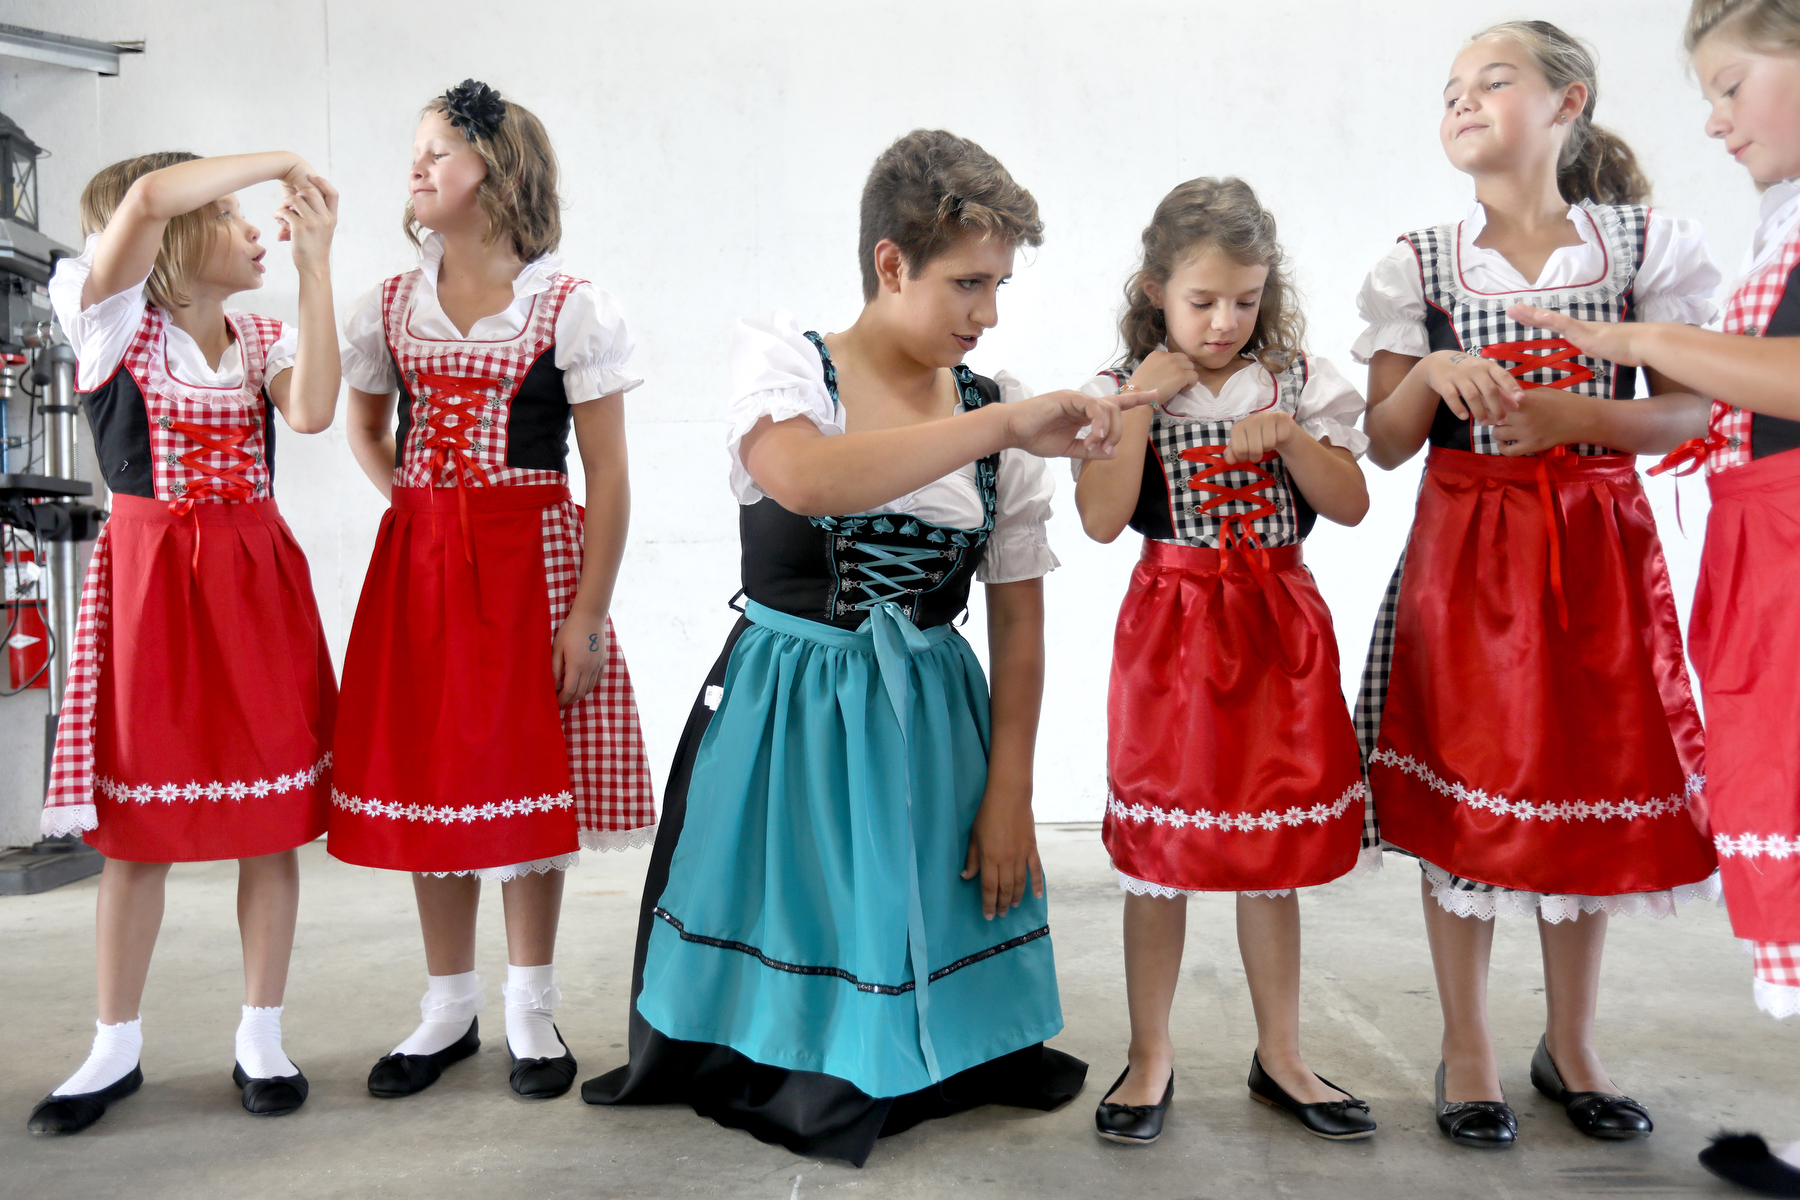 """Before practicing the Mai Pole Dance for the 40th Strassenfest Wednesday evening, Ella Wagner, 8, left, Briley Porter, 8, Breann Lechner, 17, Emilie Recker, 6, Isabella Kluesner, 8, and Lauryn Truesdale, 8, all of Jasper, read the numbers written on their hands that corresponded to starting positions in the dance at the Ackerman Oil Shop in Jasper. Jasper German Club treasurer Laura Grammer of Jasper looked forward to """"seeing the smiles on the faces of these kids as they enjoy German Heritage events that their ancestors might have enjoyed hundreds of years ago."""""""